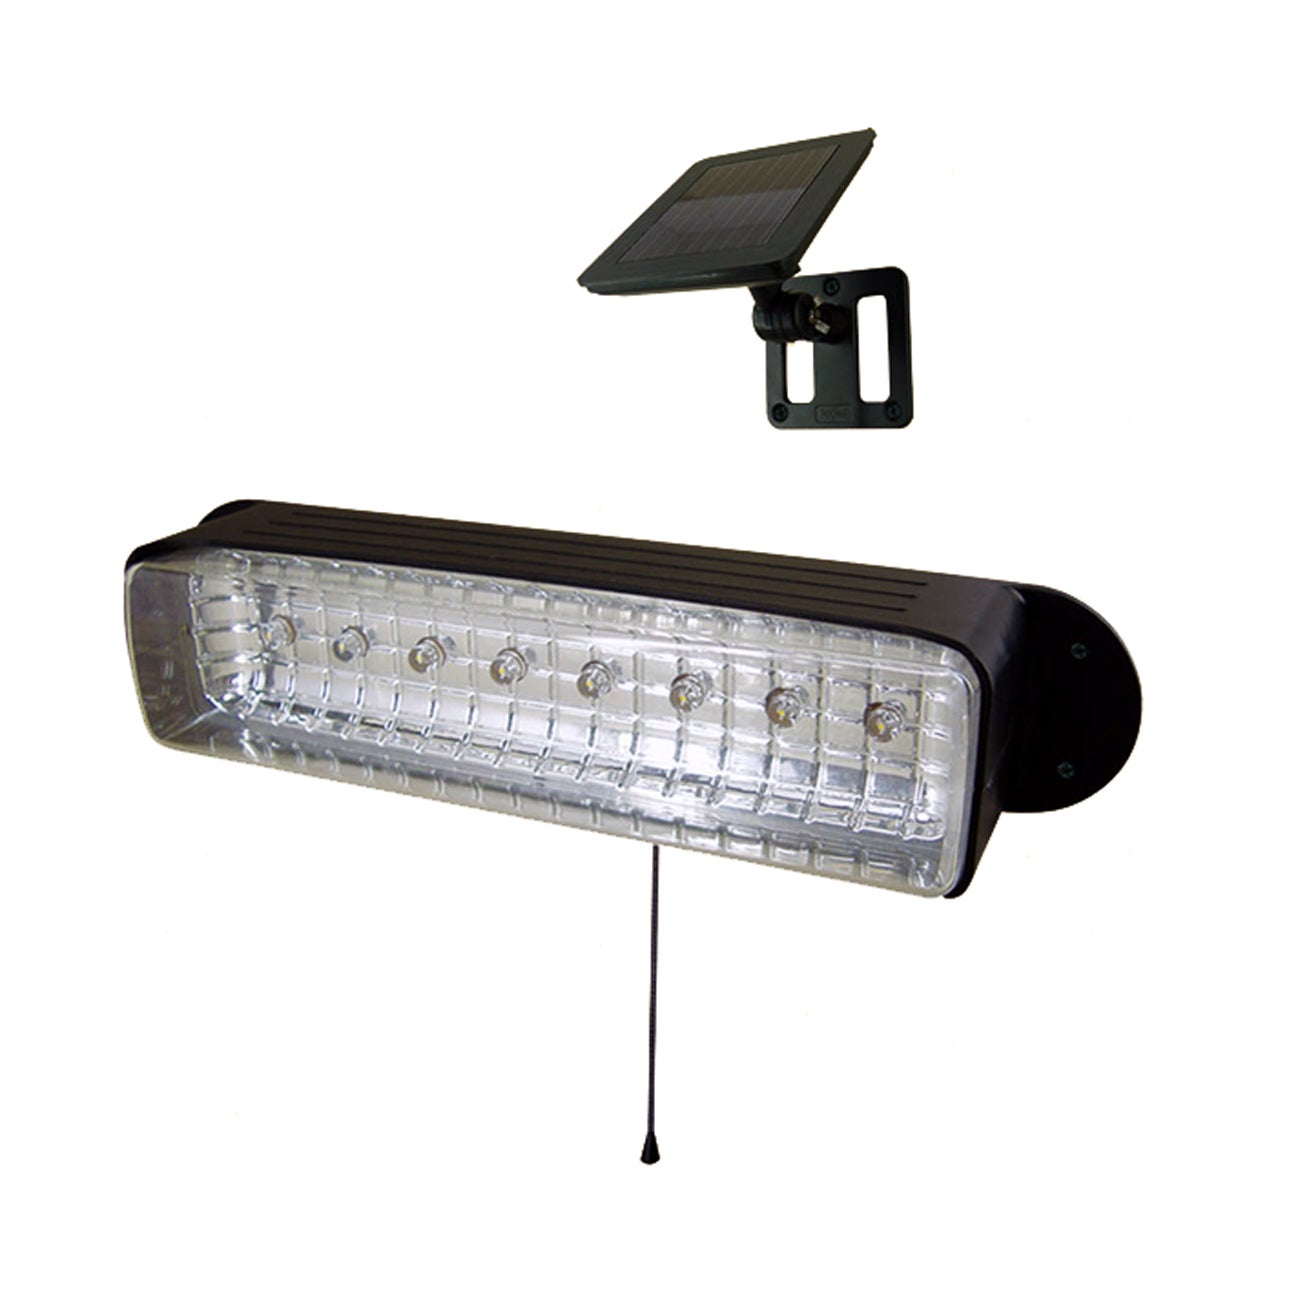 String Lights Garage : Solar Powered Wall Garage Shed Light 8-LED - 14258404 - Overstock.com Shopping - Great Deals on ...